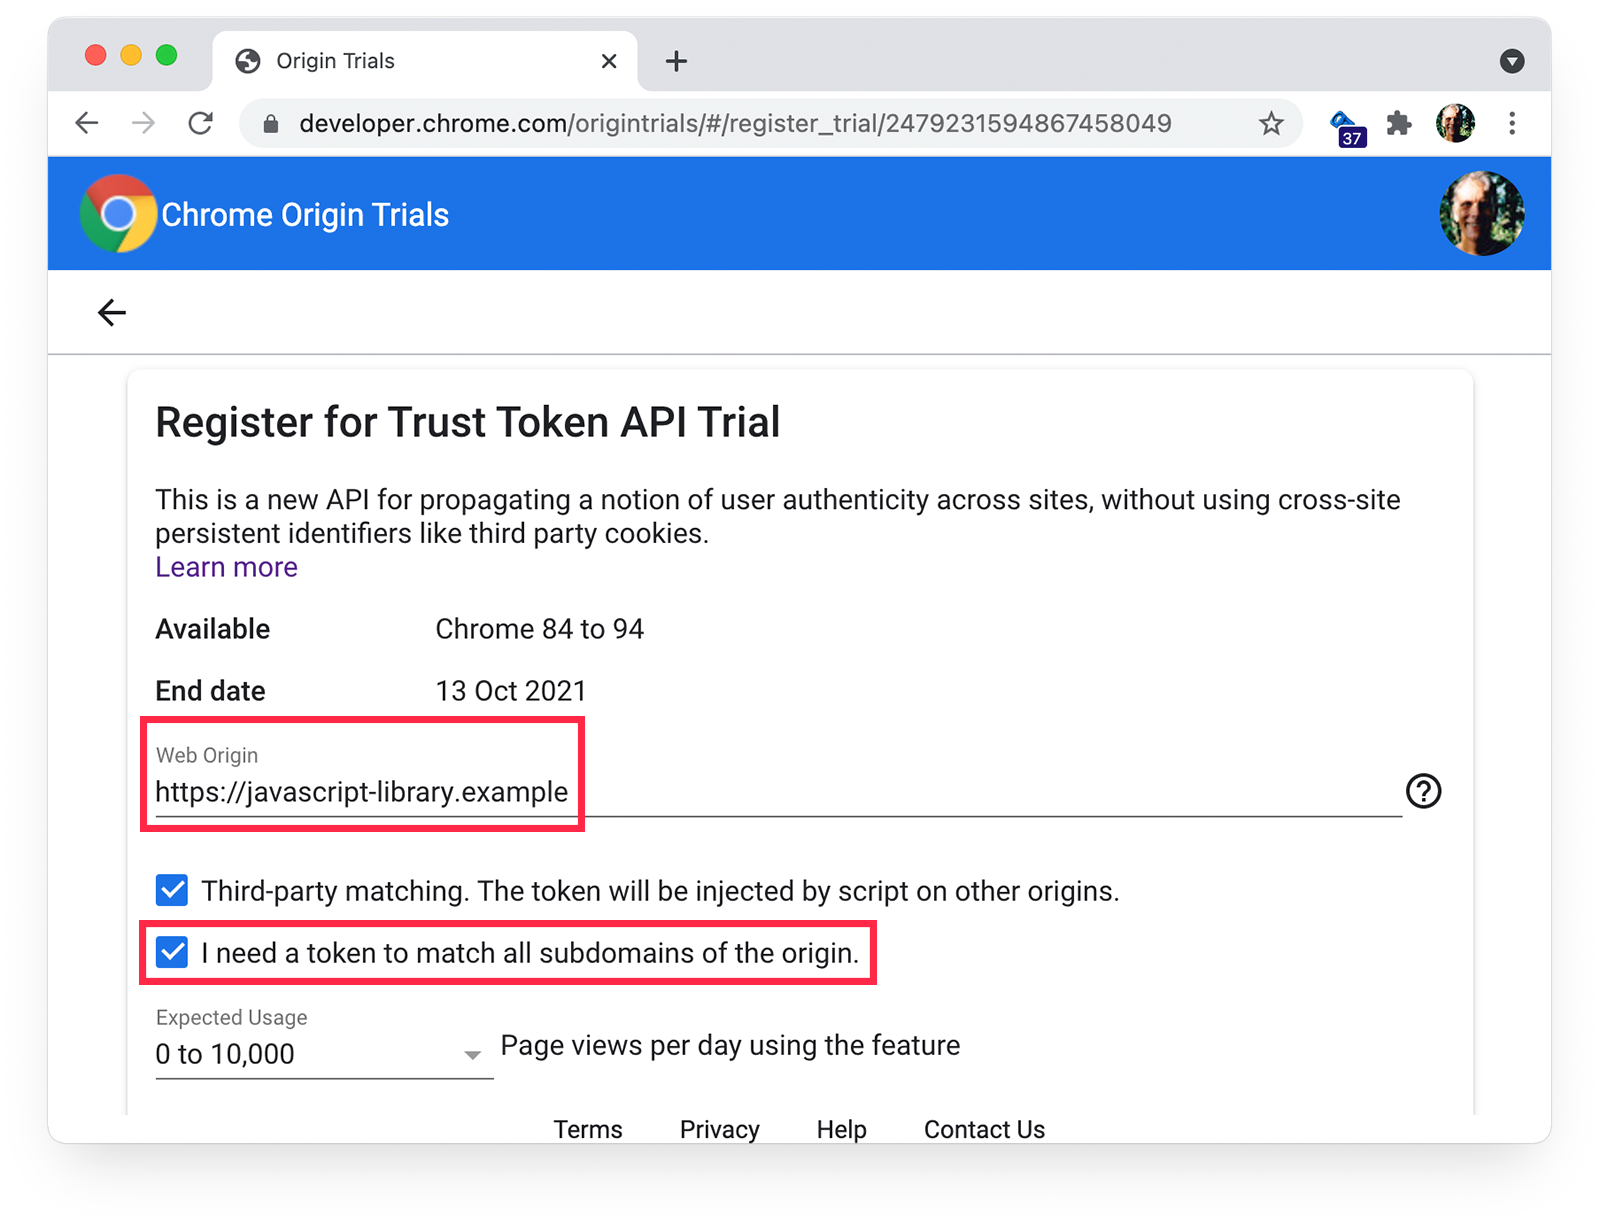 Chrome origin trials  registration page showing third-party matching and subdomain-matching selected